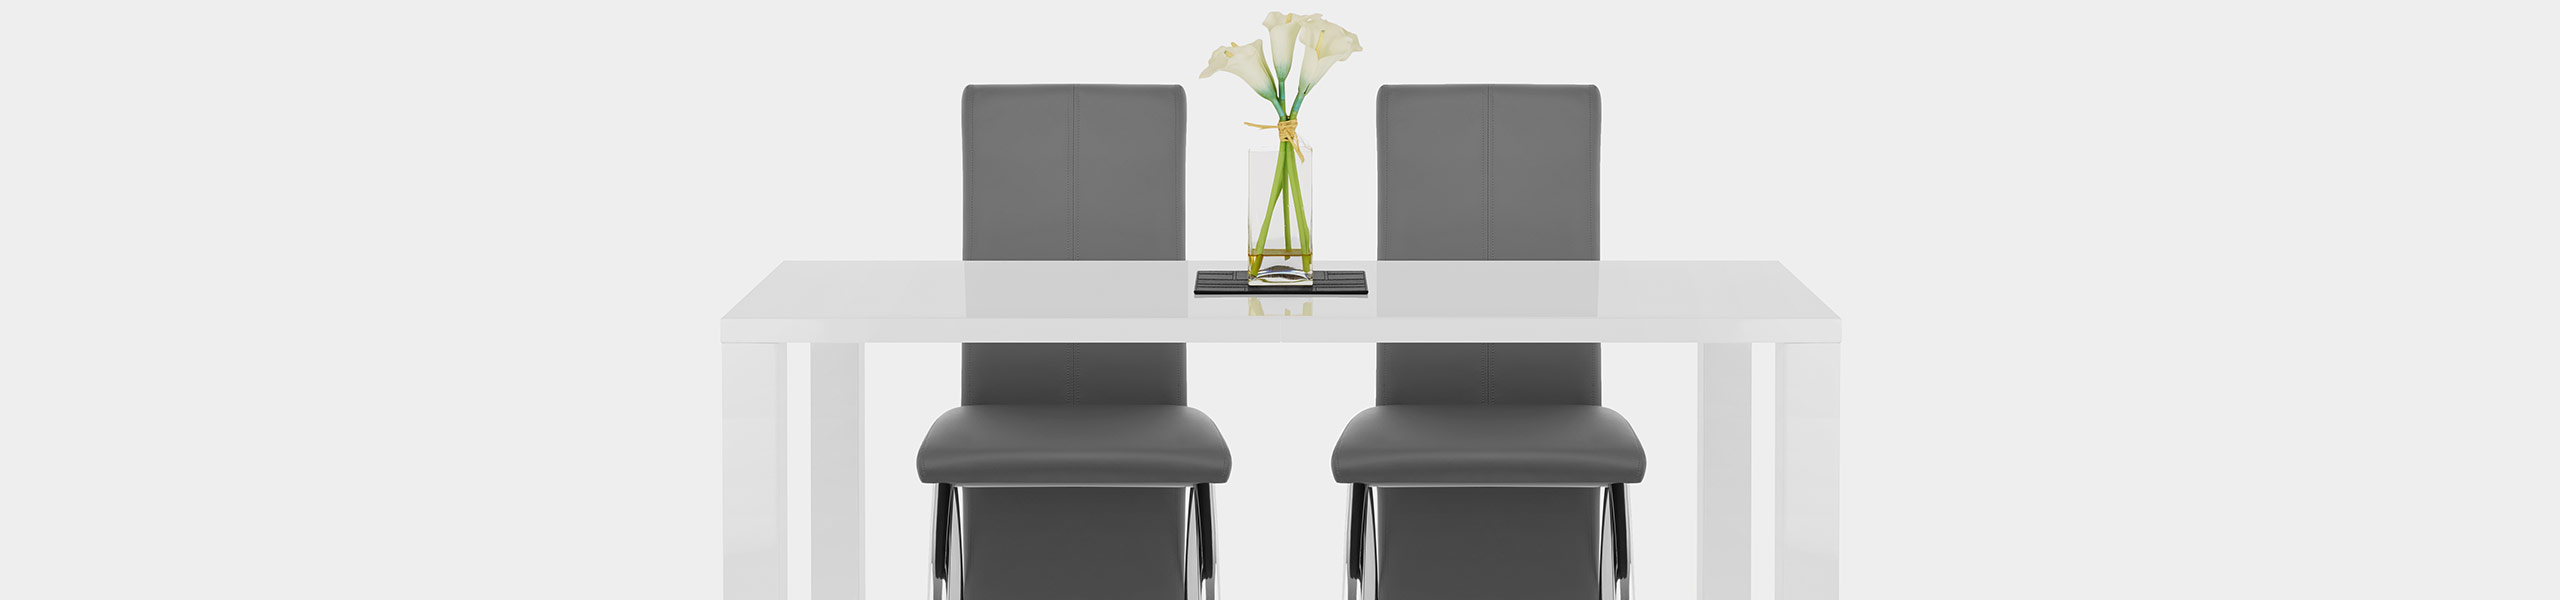 Dali Dining Chair Grey Video Banner